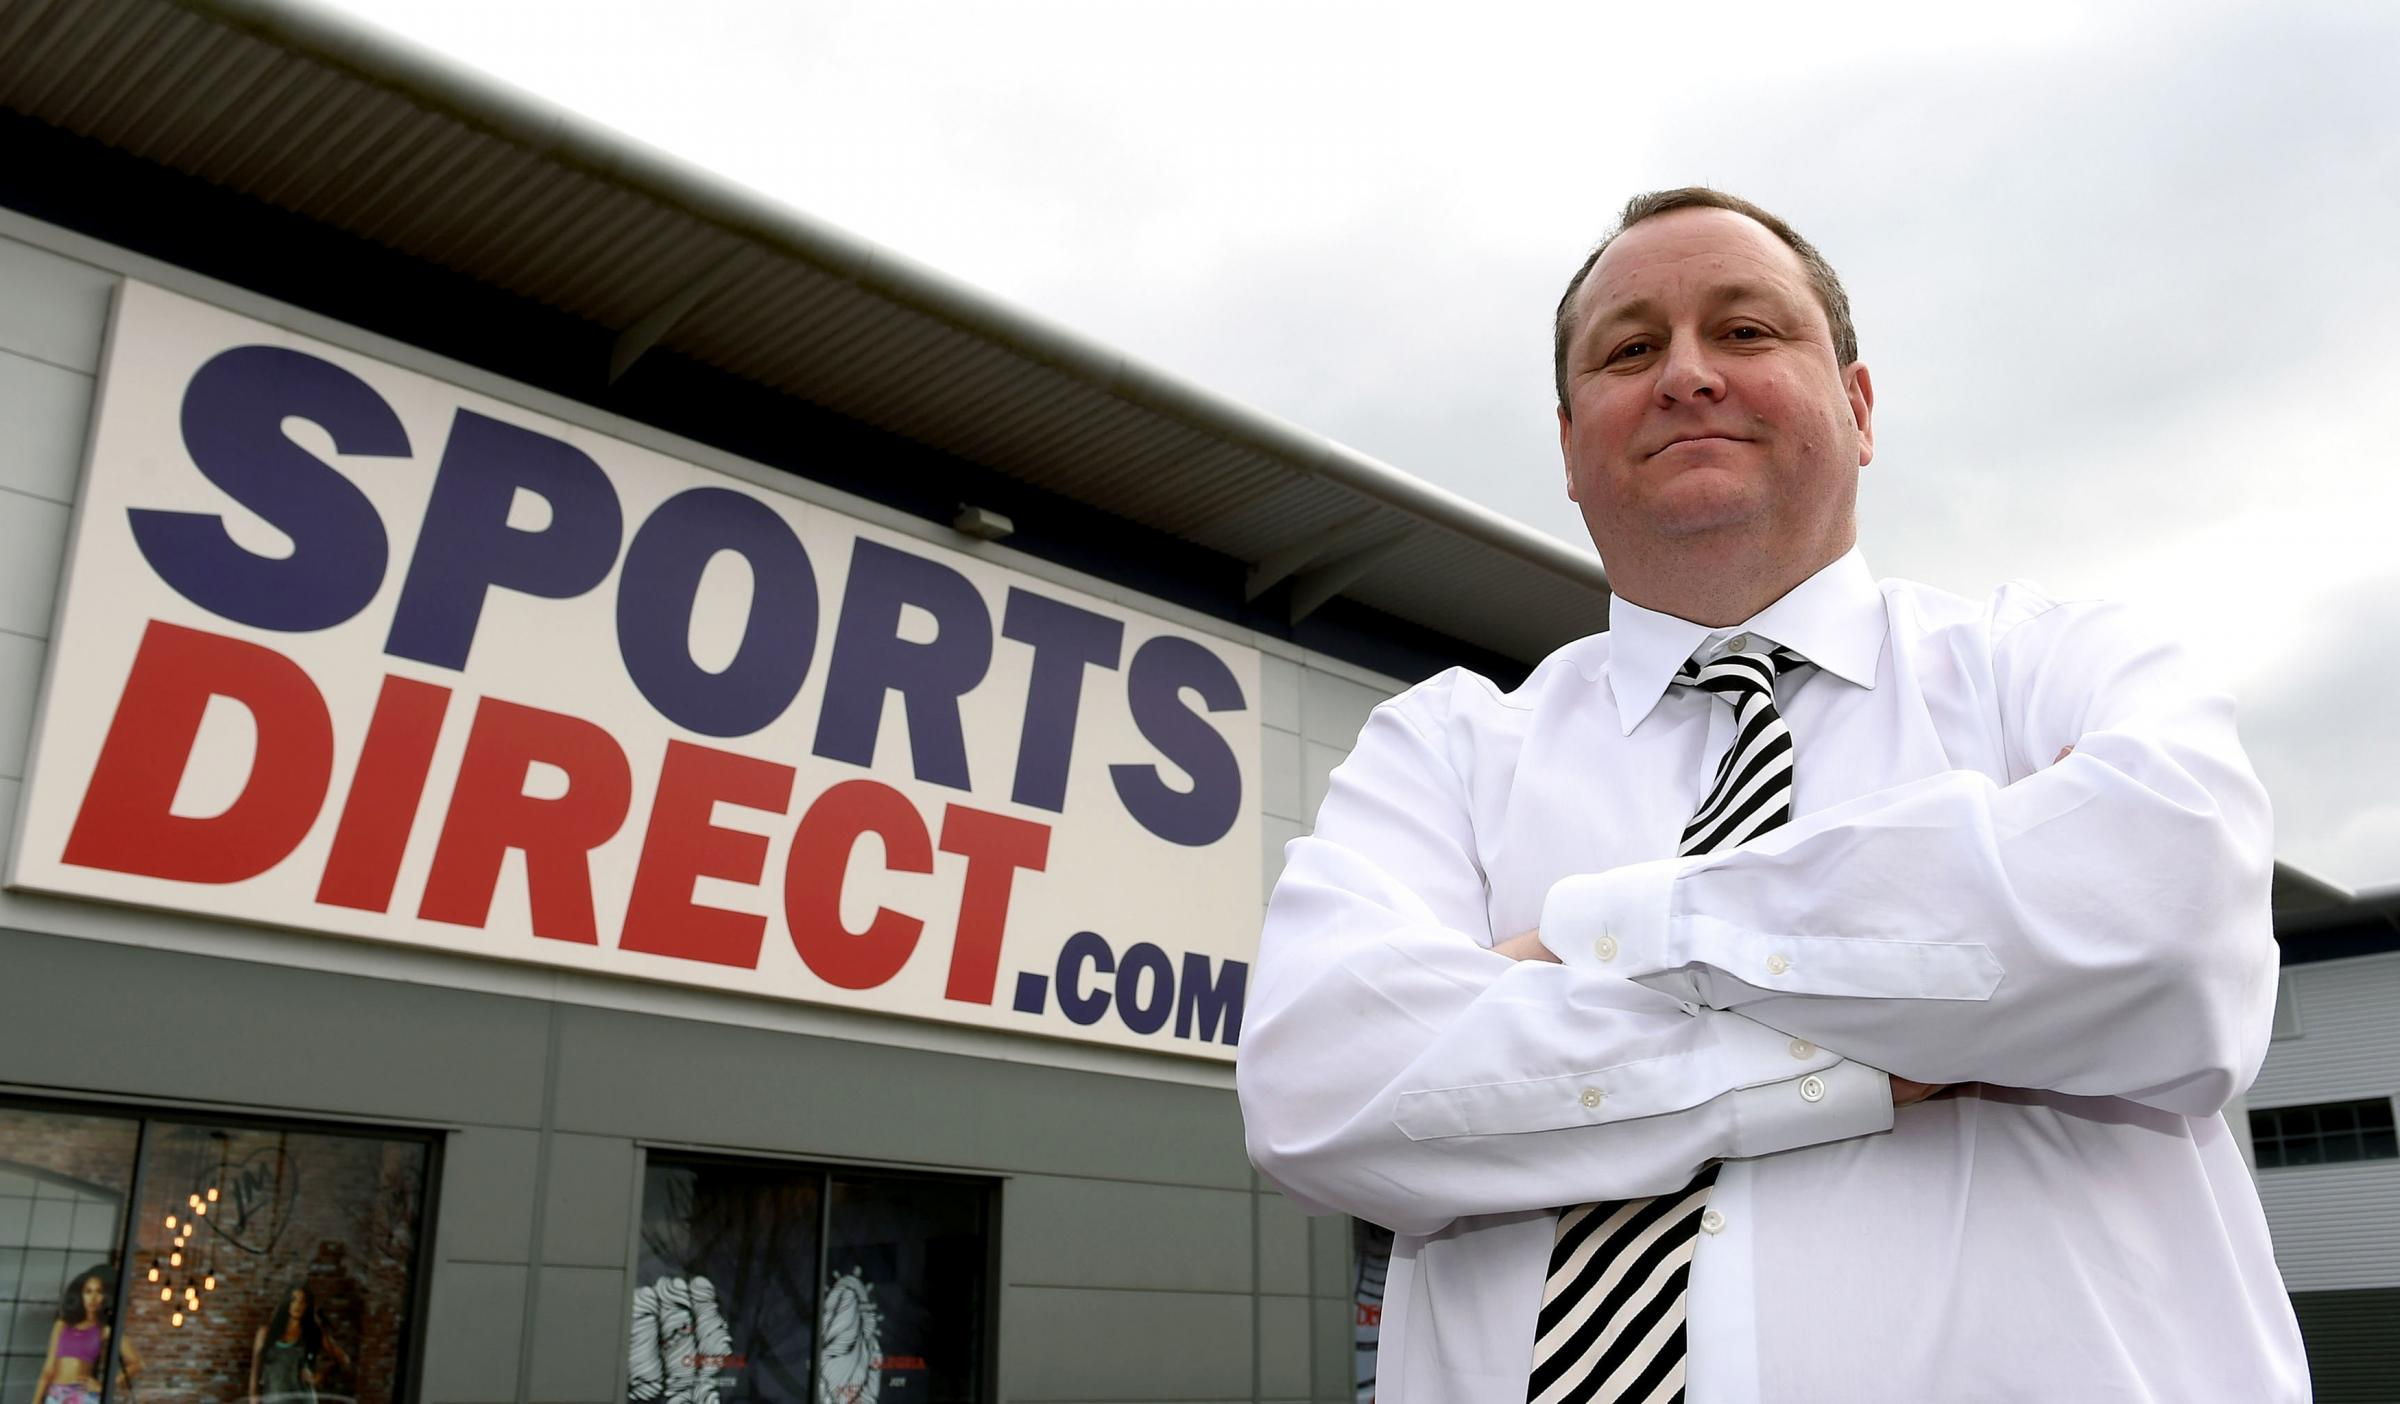 Sports Direct founder Mike Ashley. Photograph: Joe Giddens/PA Wire